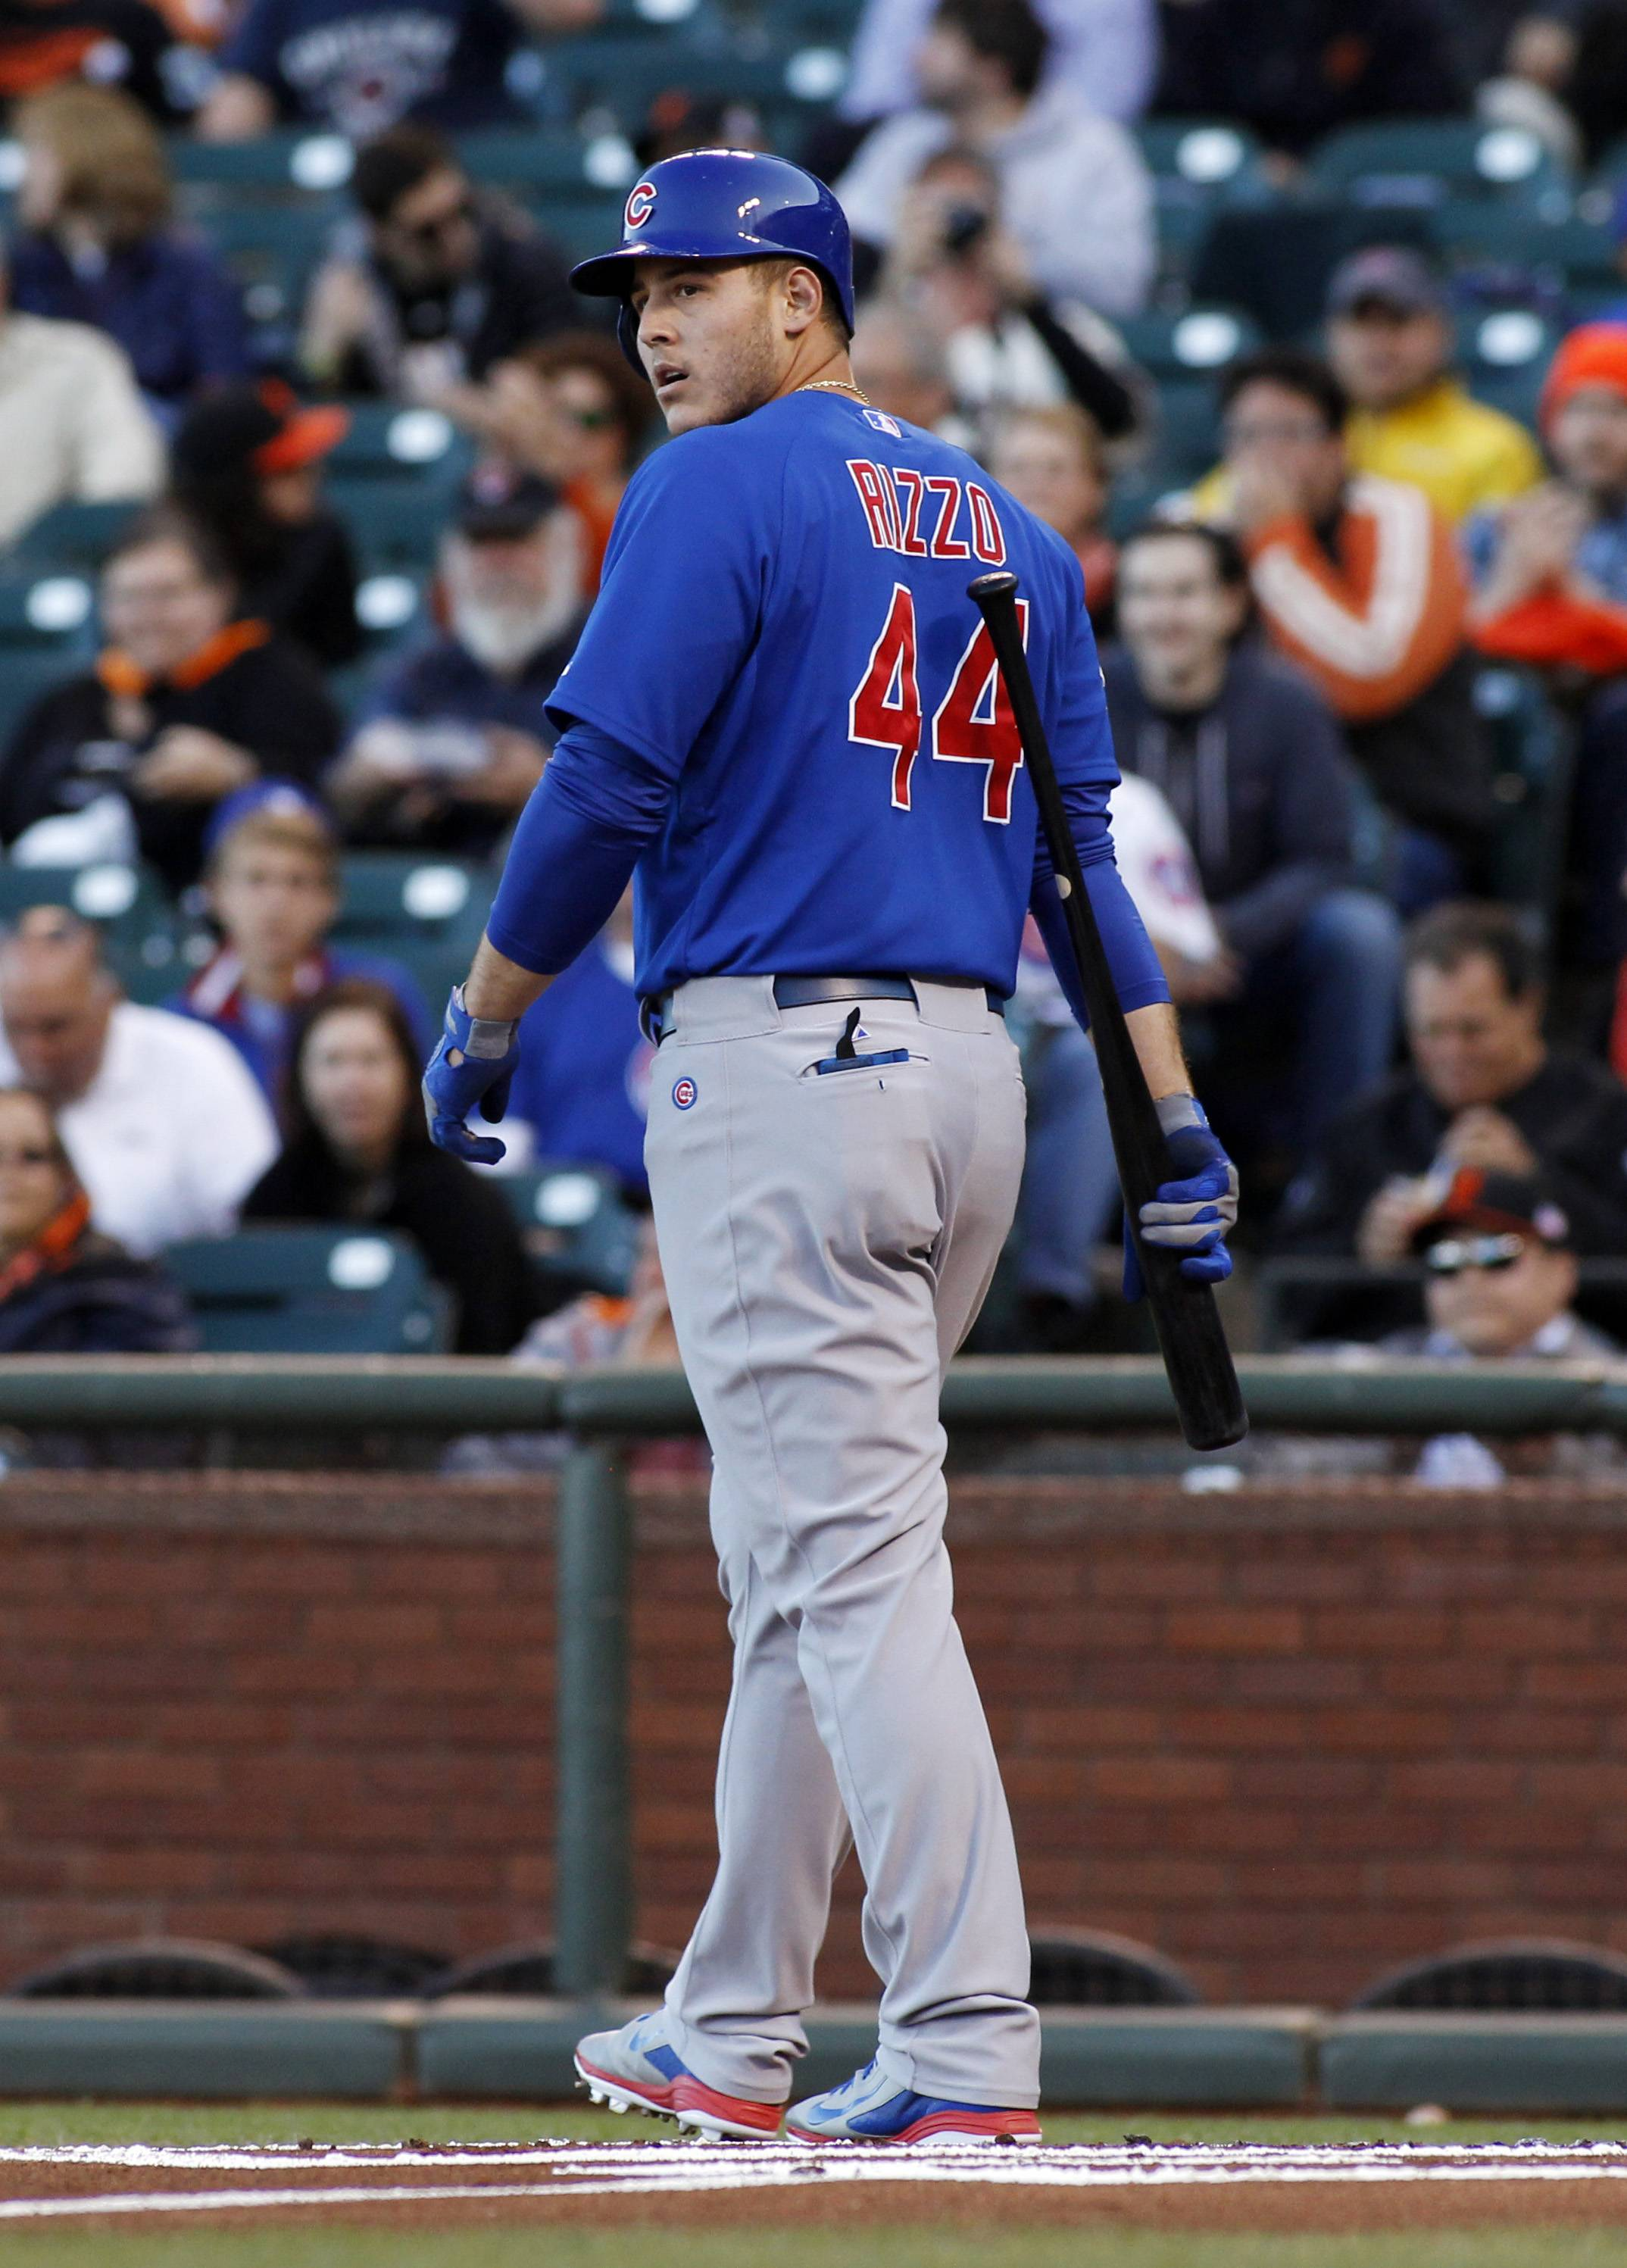 Chicago Cubs' Anthony Rizzo looks back after striking out against the San Francisco Giants during the first inning of a baseball game, Tuesday, May 27, 2014, in San Francisco. (AP Photo/George Nikitin)